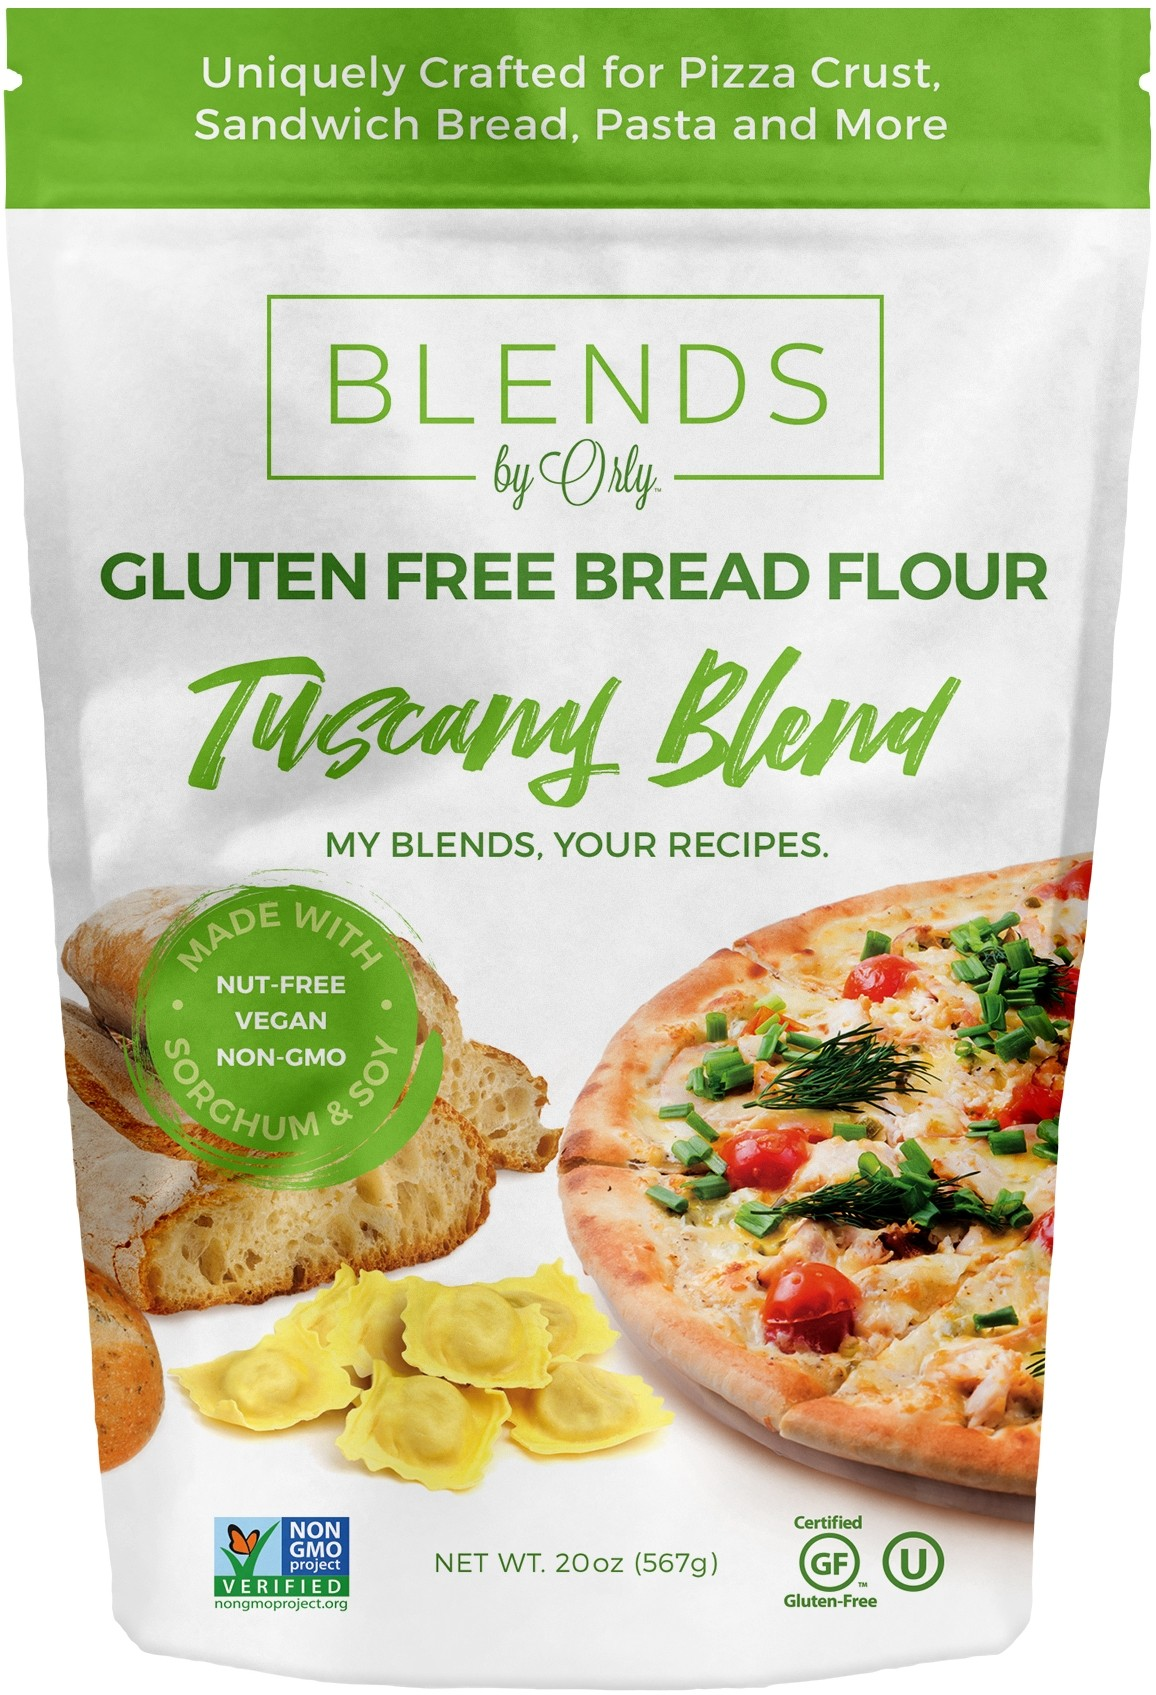 Blends By Orly, Tuscany Blend [6 Pack]